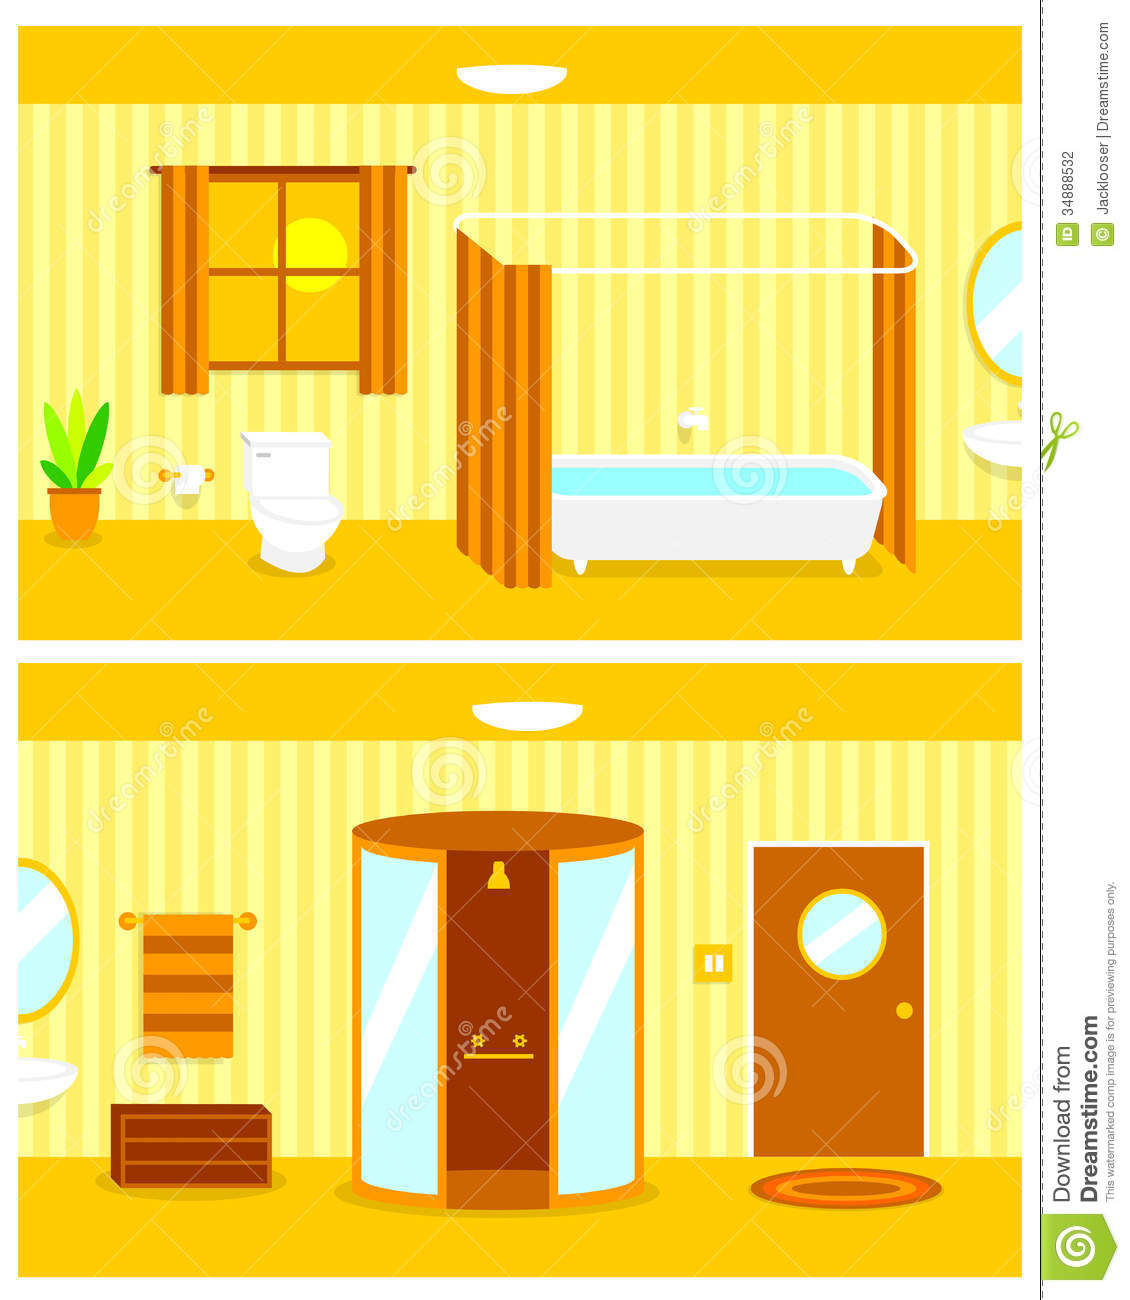 Cartoon Pictures Of Bathrooms: Bathroom Stock Vector. Image Of Clean, Mirror, Flush